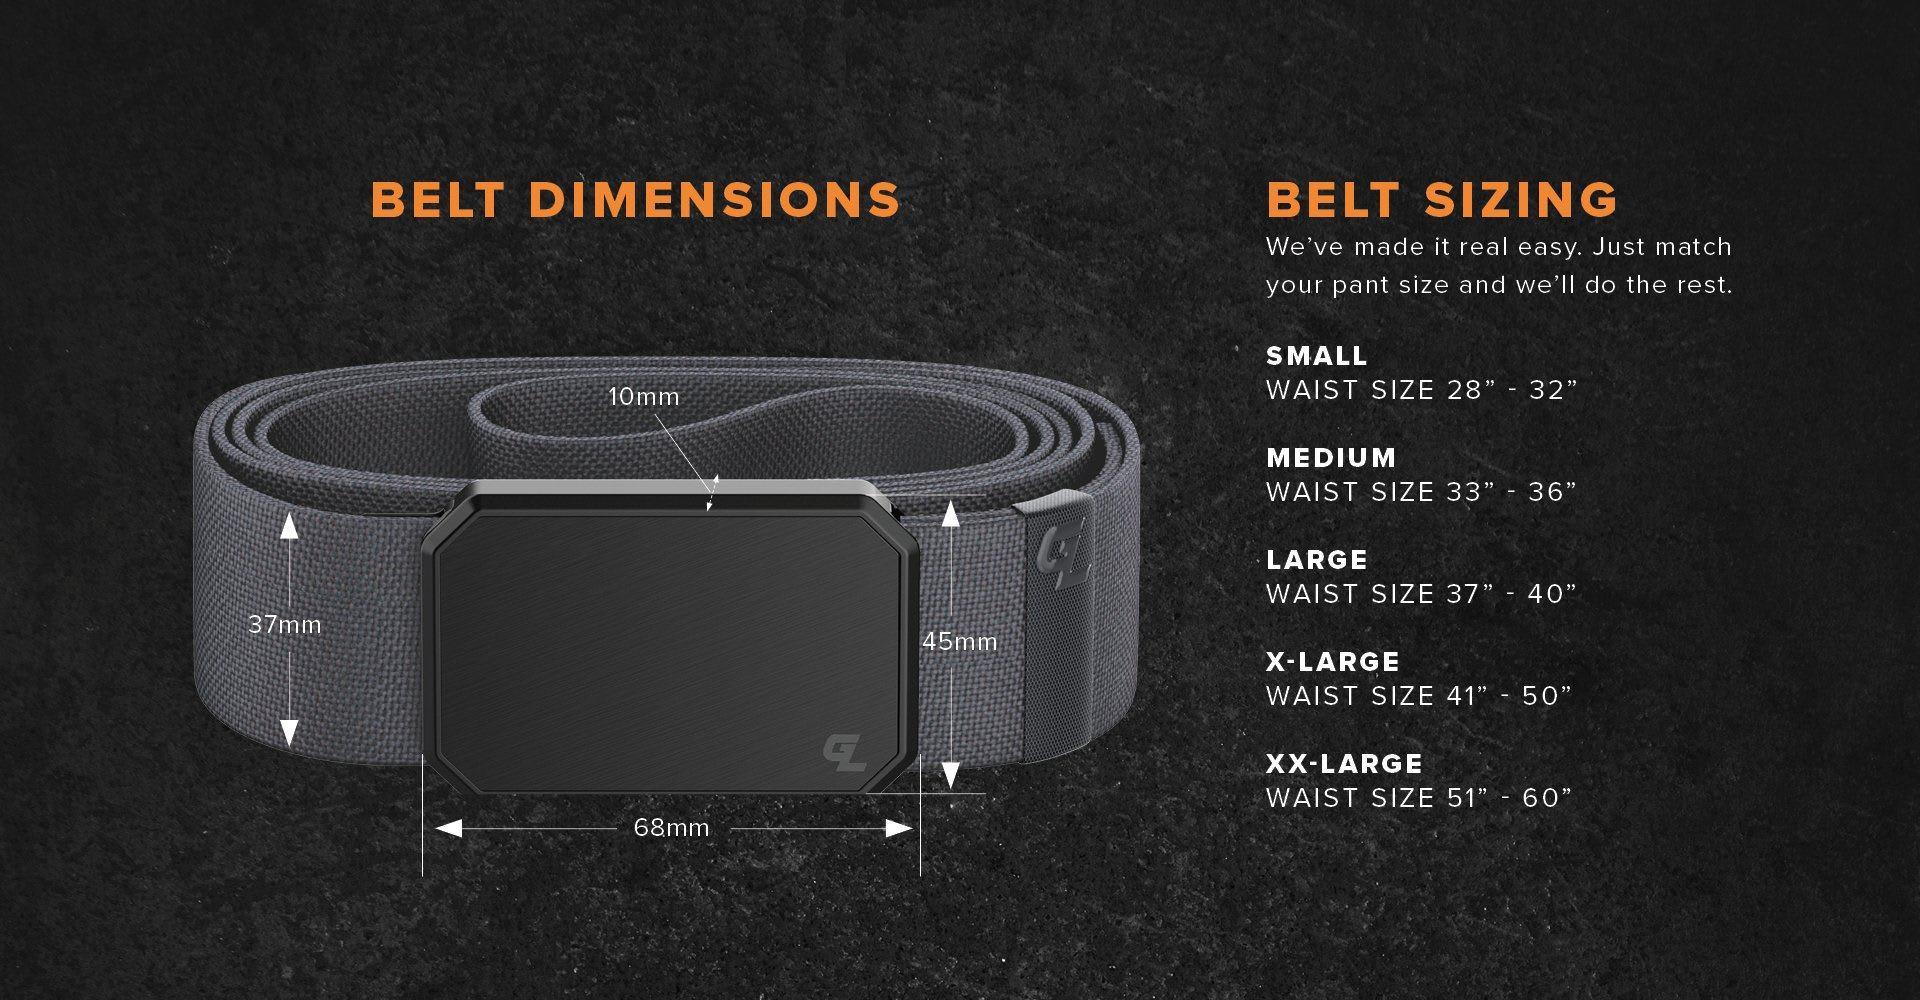 "Belt Sizing; Small 28"" - 32"", Medium 33"" - 36"", Large 37"" - 40"", XL 41"" - 50"",  XL 51"" - 60"""